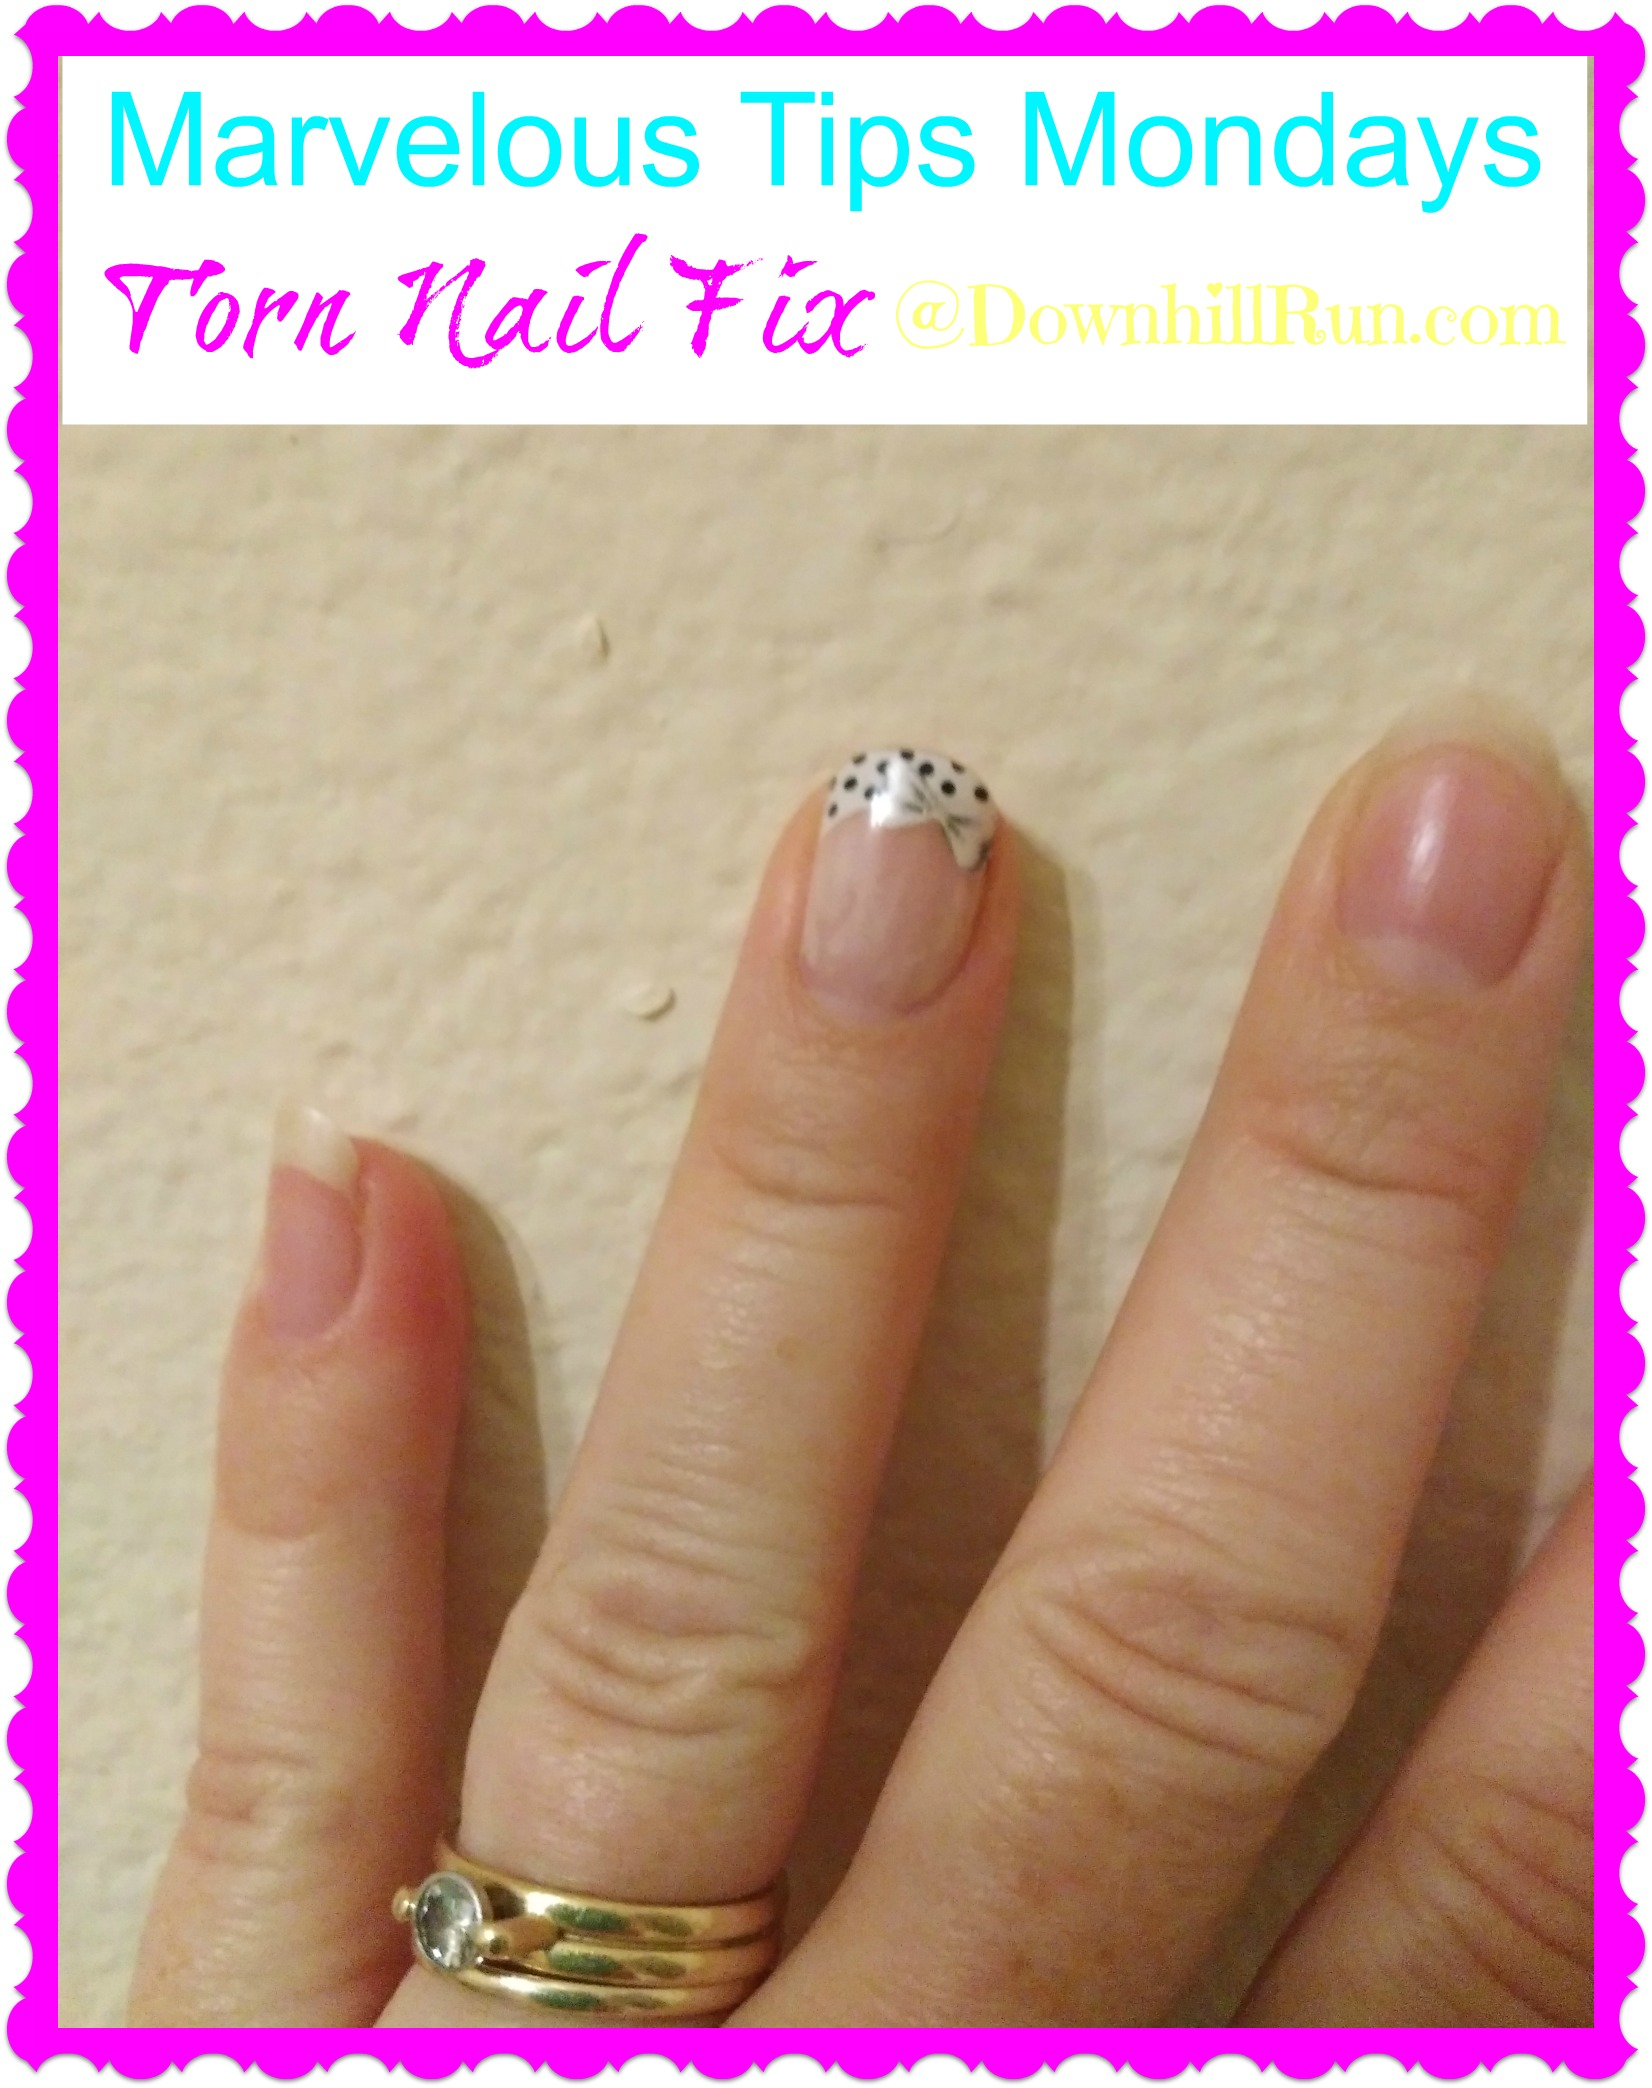 Marvelous Tips Mondays – Broken Nail | SimpleStepsForLivingLife